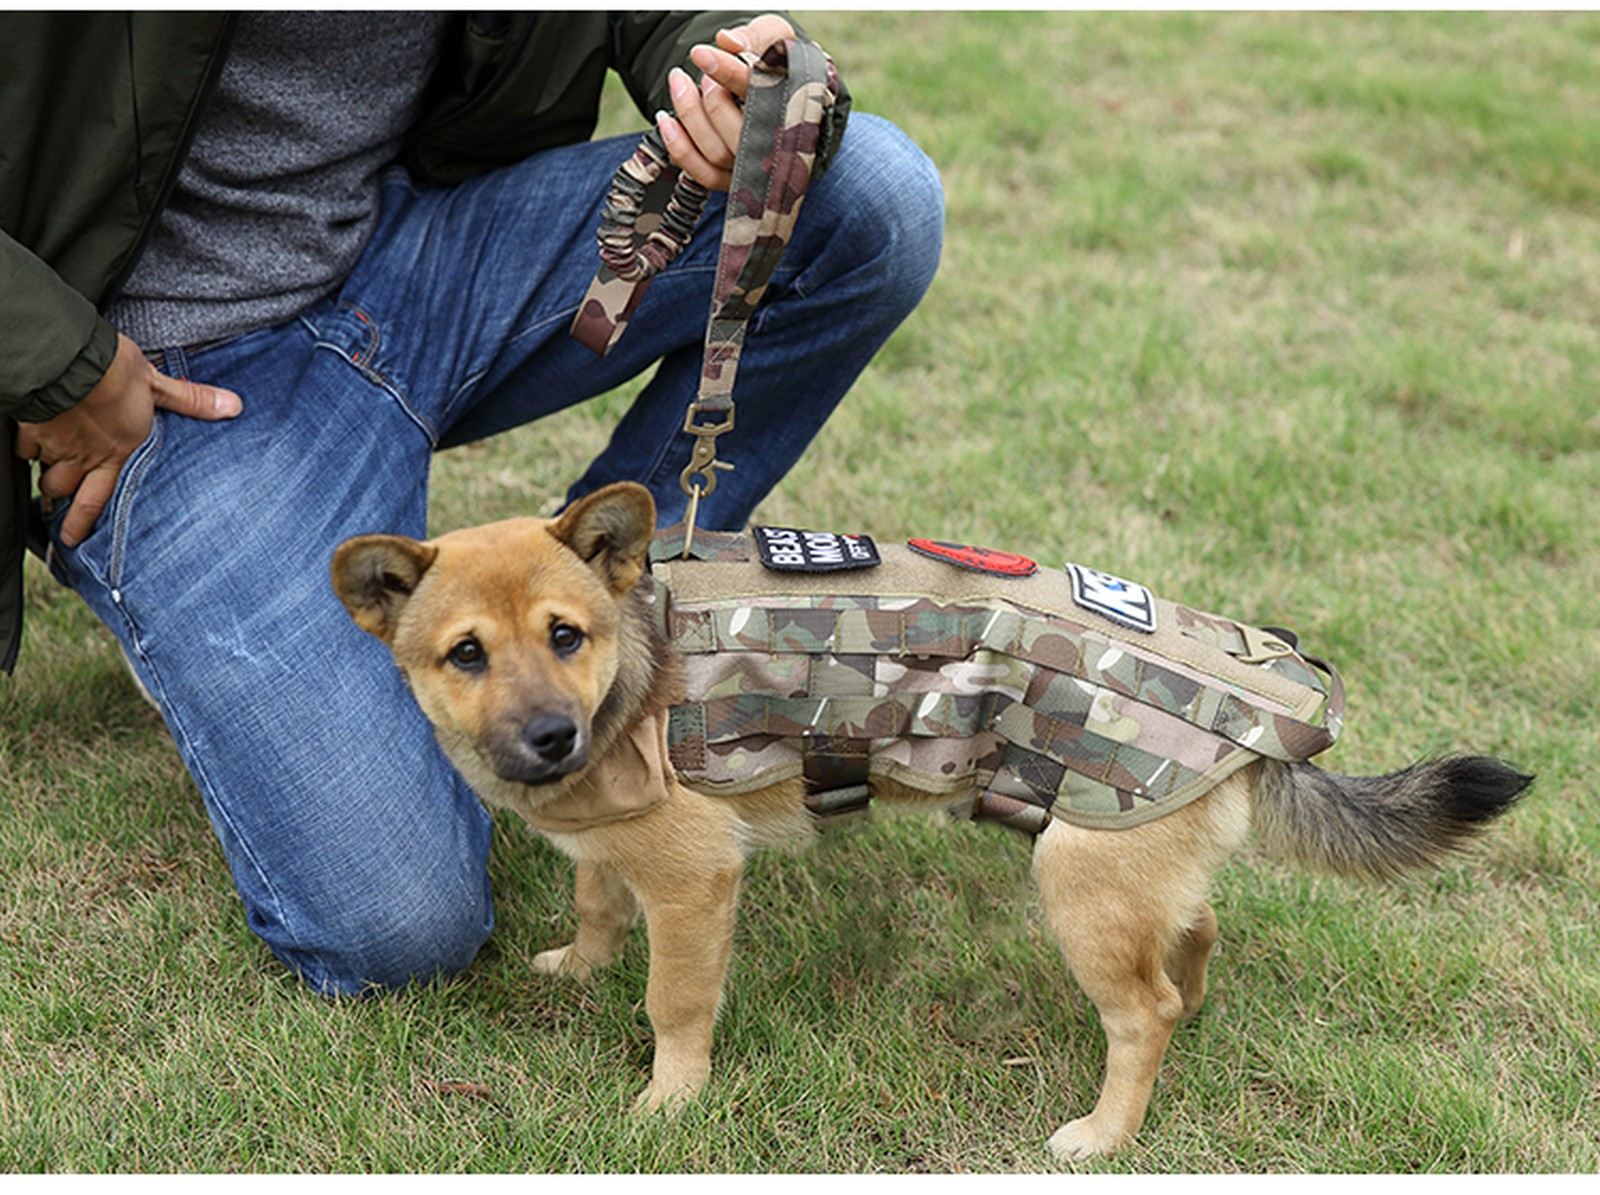 Tactical-Scorpion-Gear-Dog-Leash-Lead-Canine-K9-Military-Training-Vest-Harness thumbnail 11